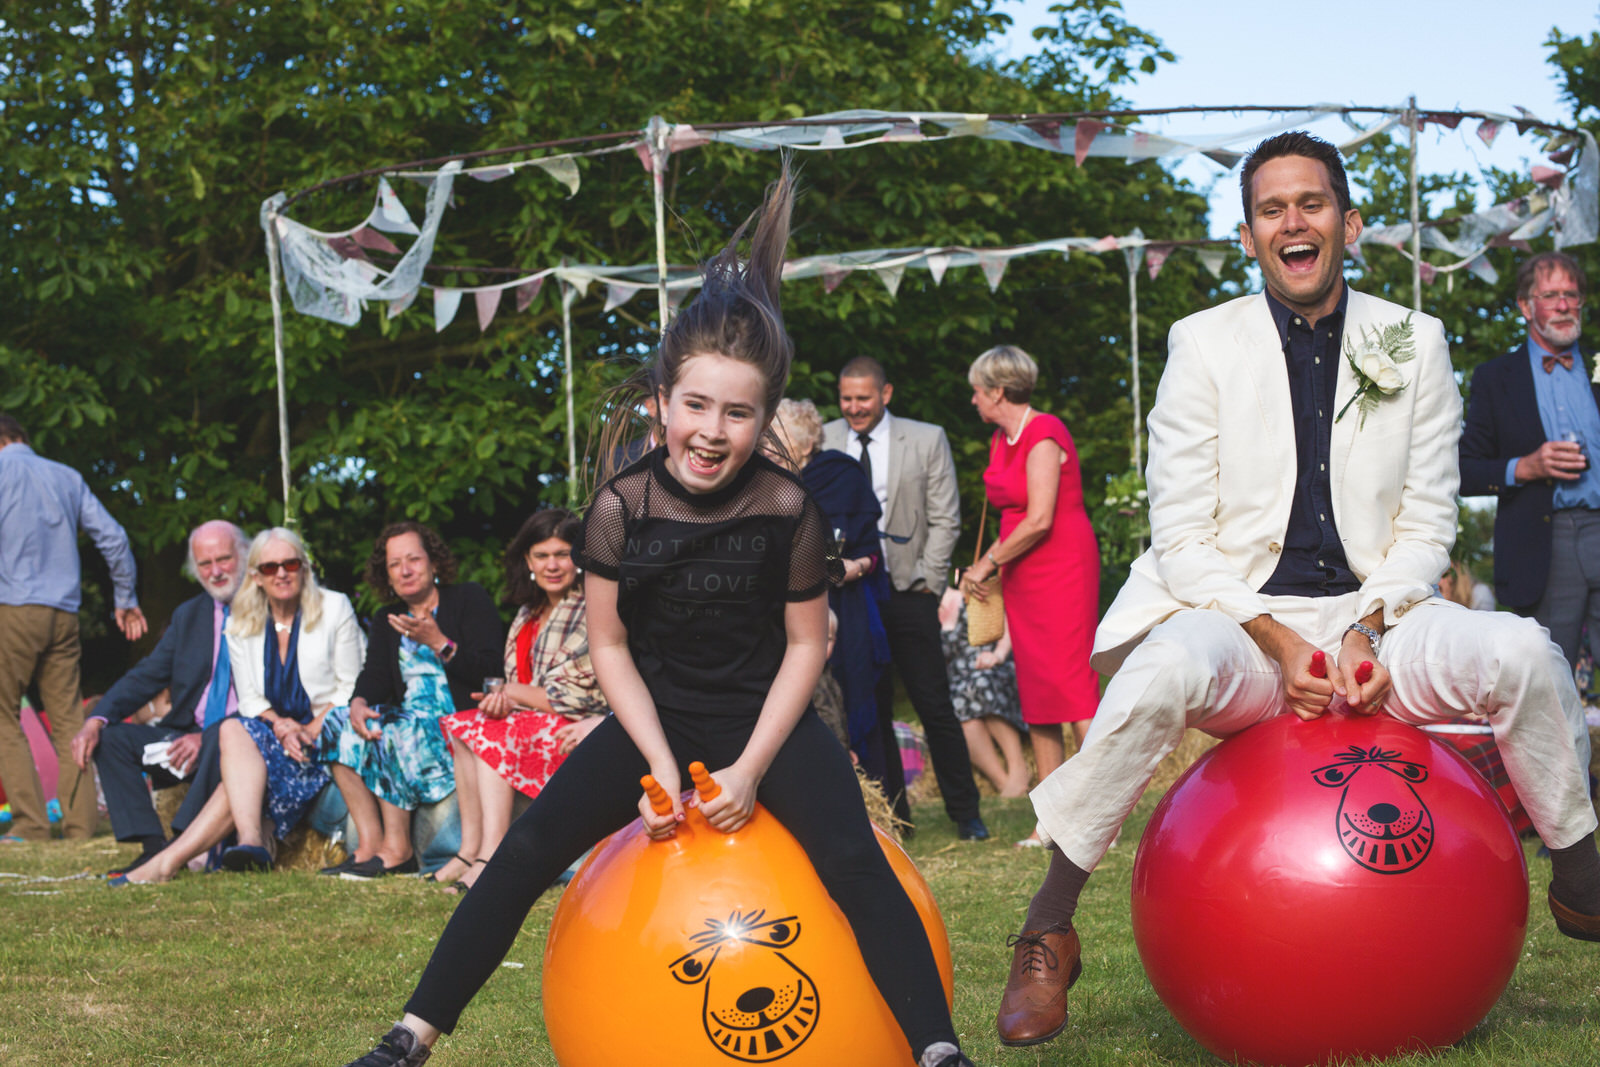 Wedding guests racing on space hoppers by Tyler Made Photography